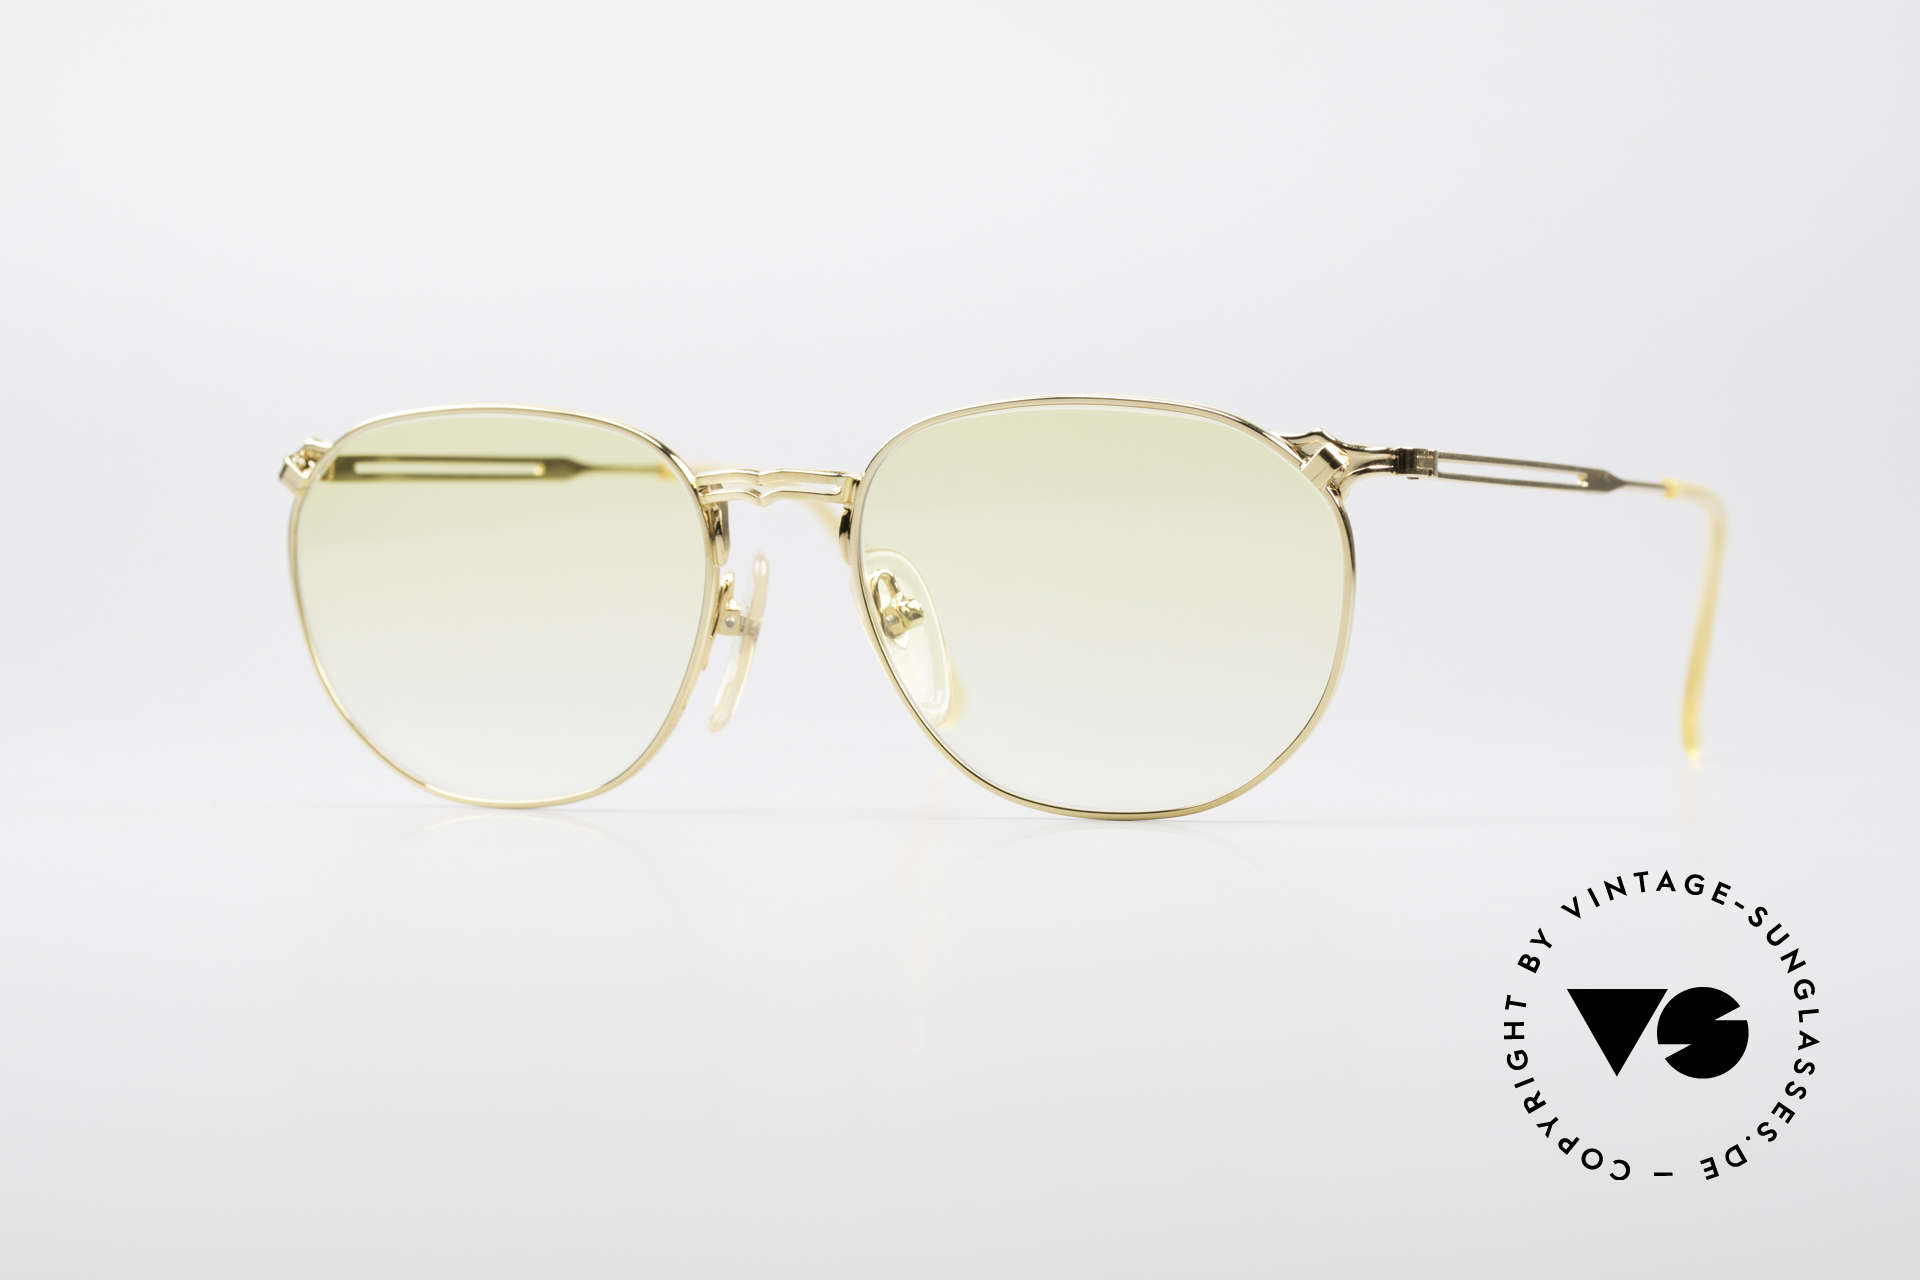 Jean Paul Gaultier 55-2173 Gold Plated Designer Frame, interesting vintage J.P. GAULTIER designer sunglasses, Made for Men and Women